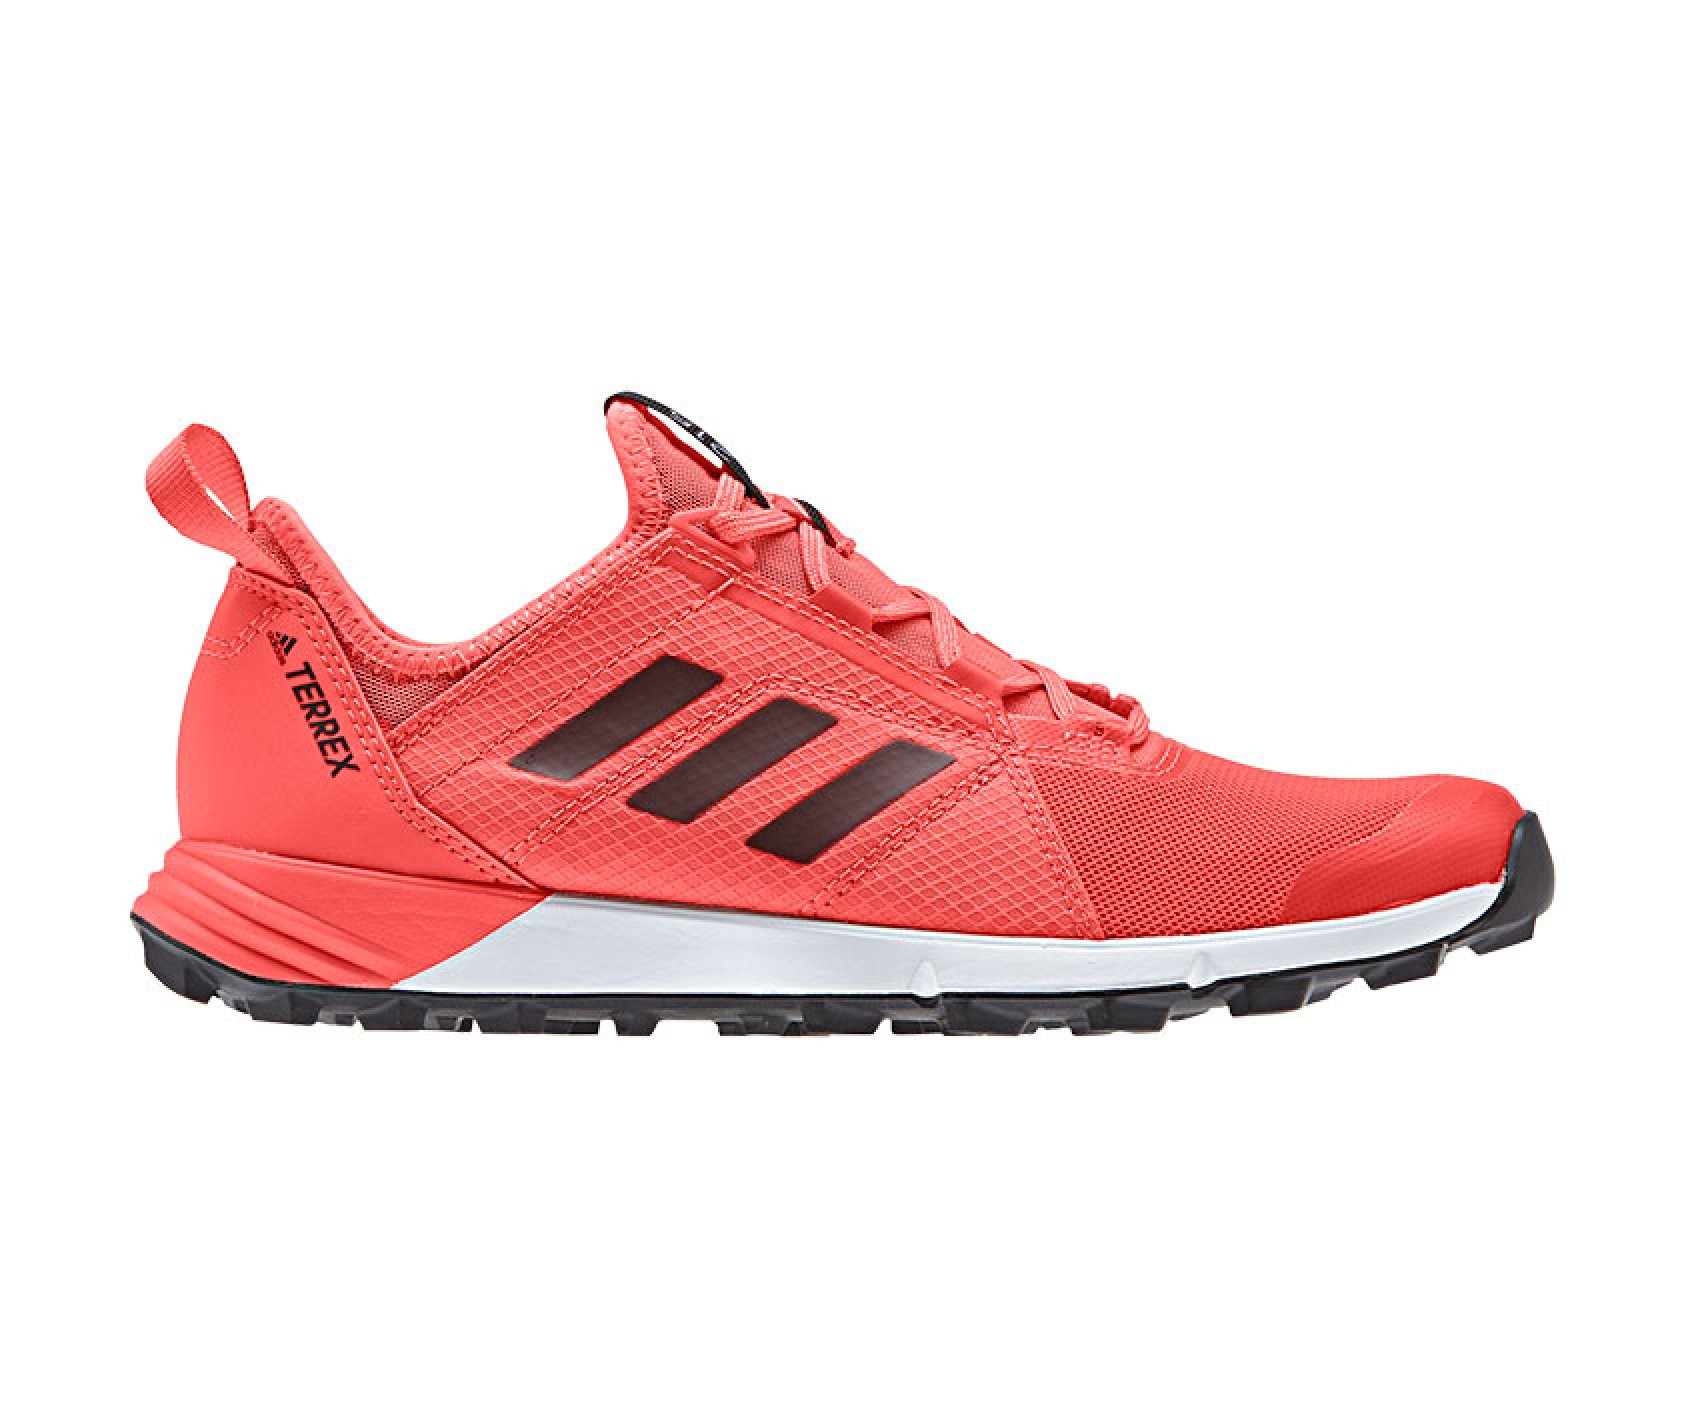 Adidas Terrex Agravic Mujer Lujo Adidas Terrex Agravic Coral Blanco Negro Mujer Envo 24h Of 44  Brillante Adidas Terrex Agravic Mujer